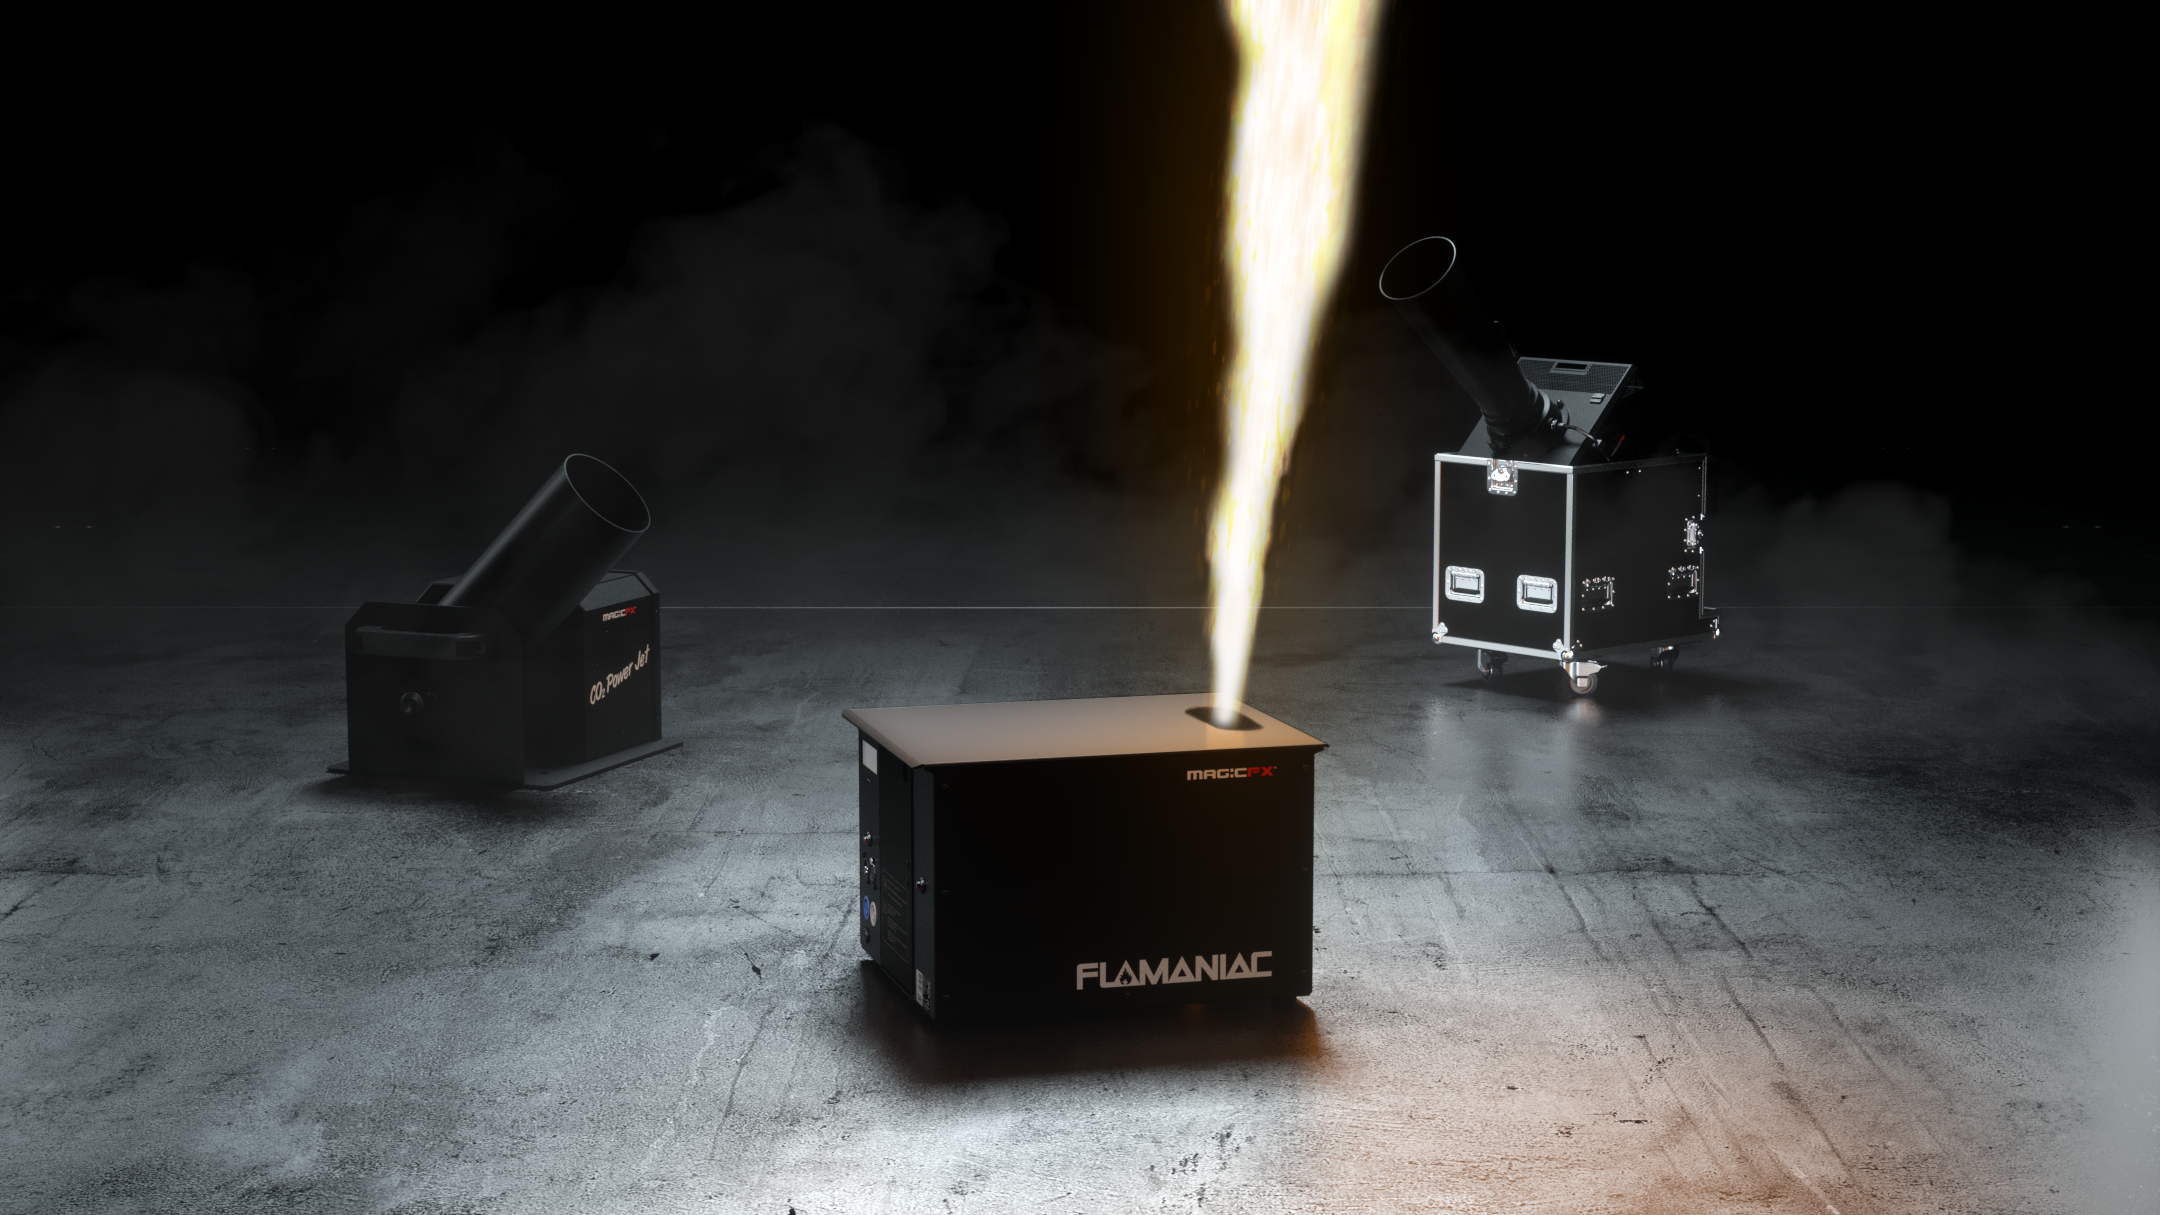 Flamaniac MagicFX